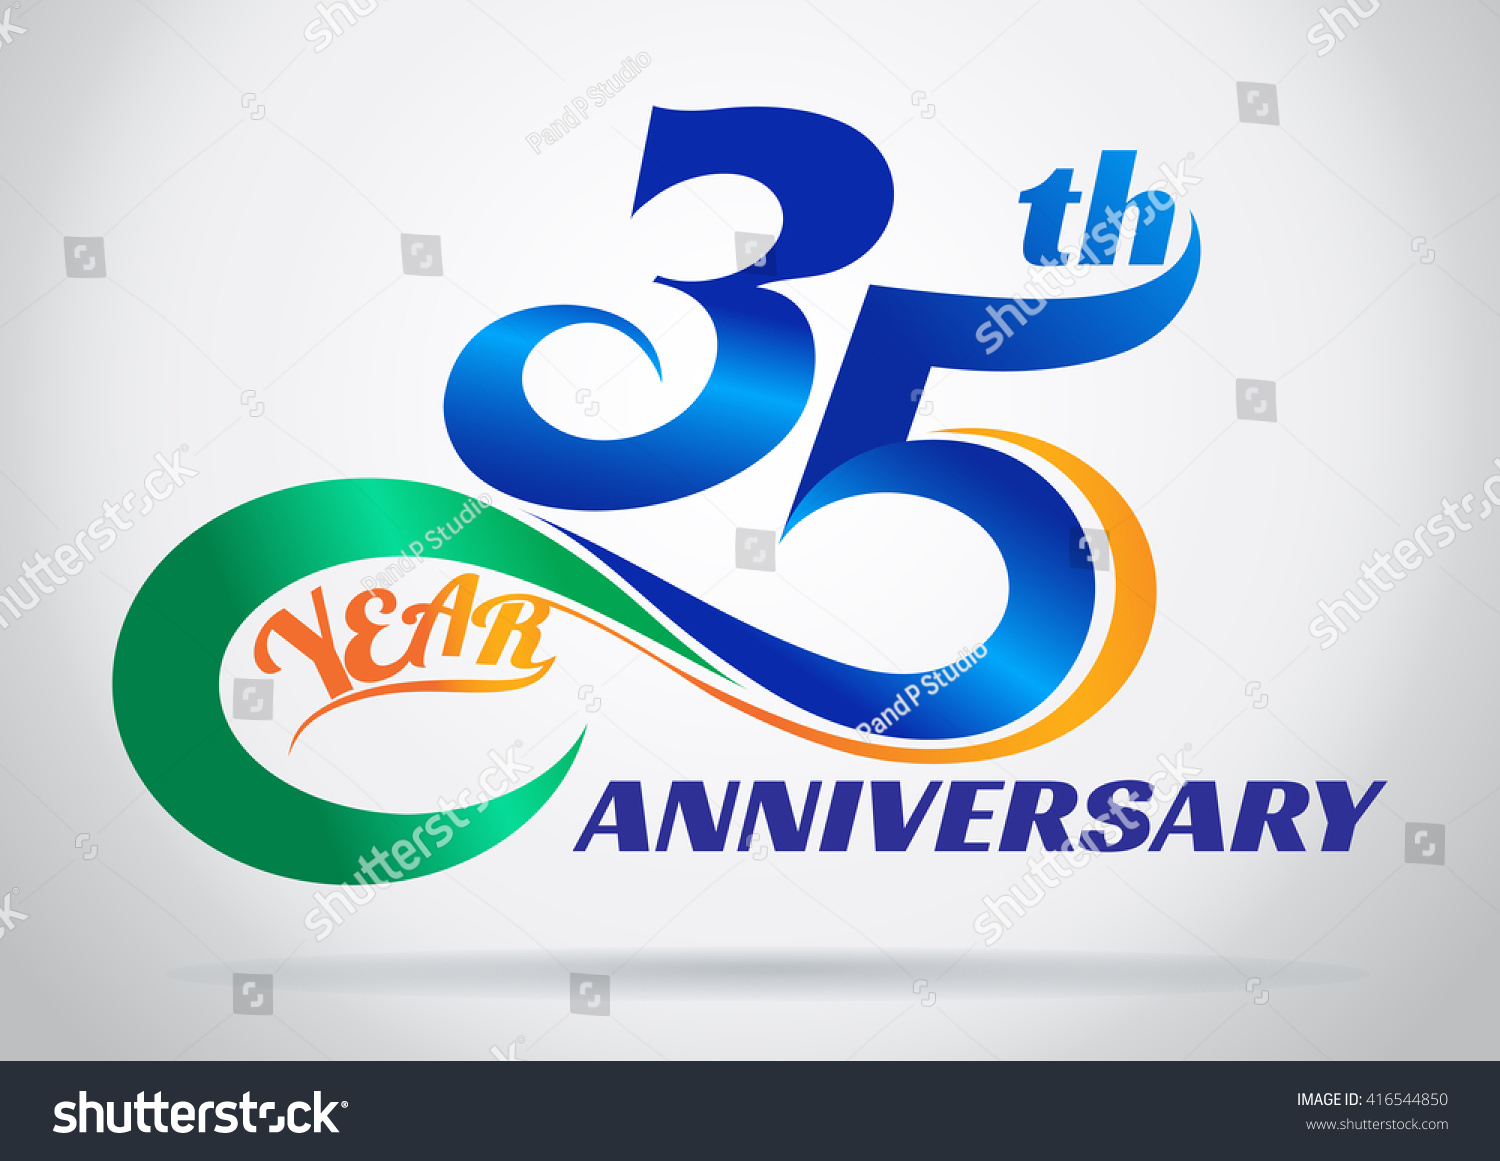 35th anniversary with an infinity symbol creative design stock vector illustration 416544850 - Th anniversary symbol ...